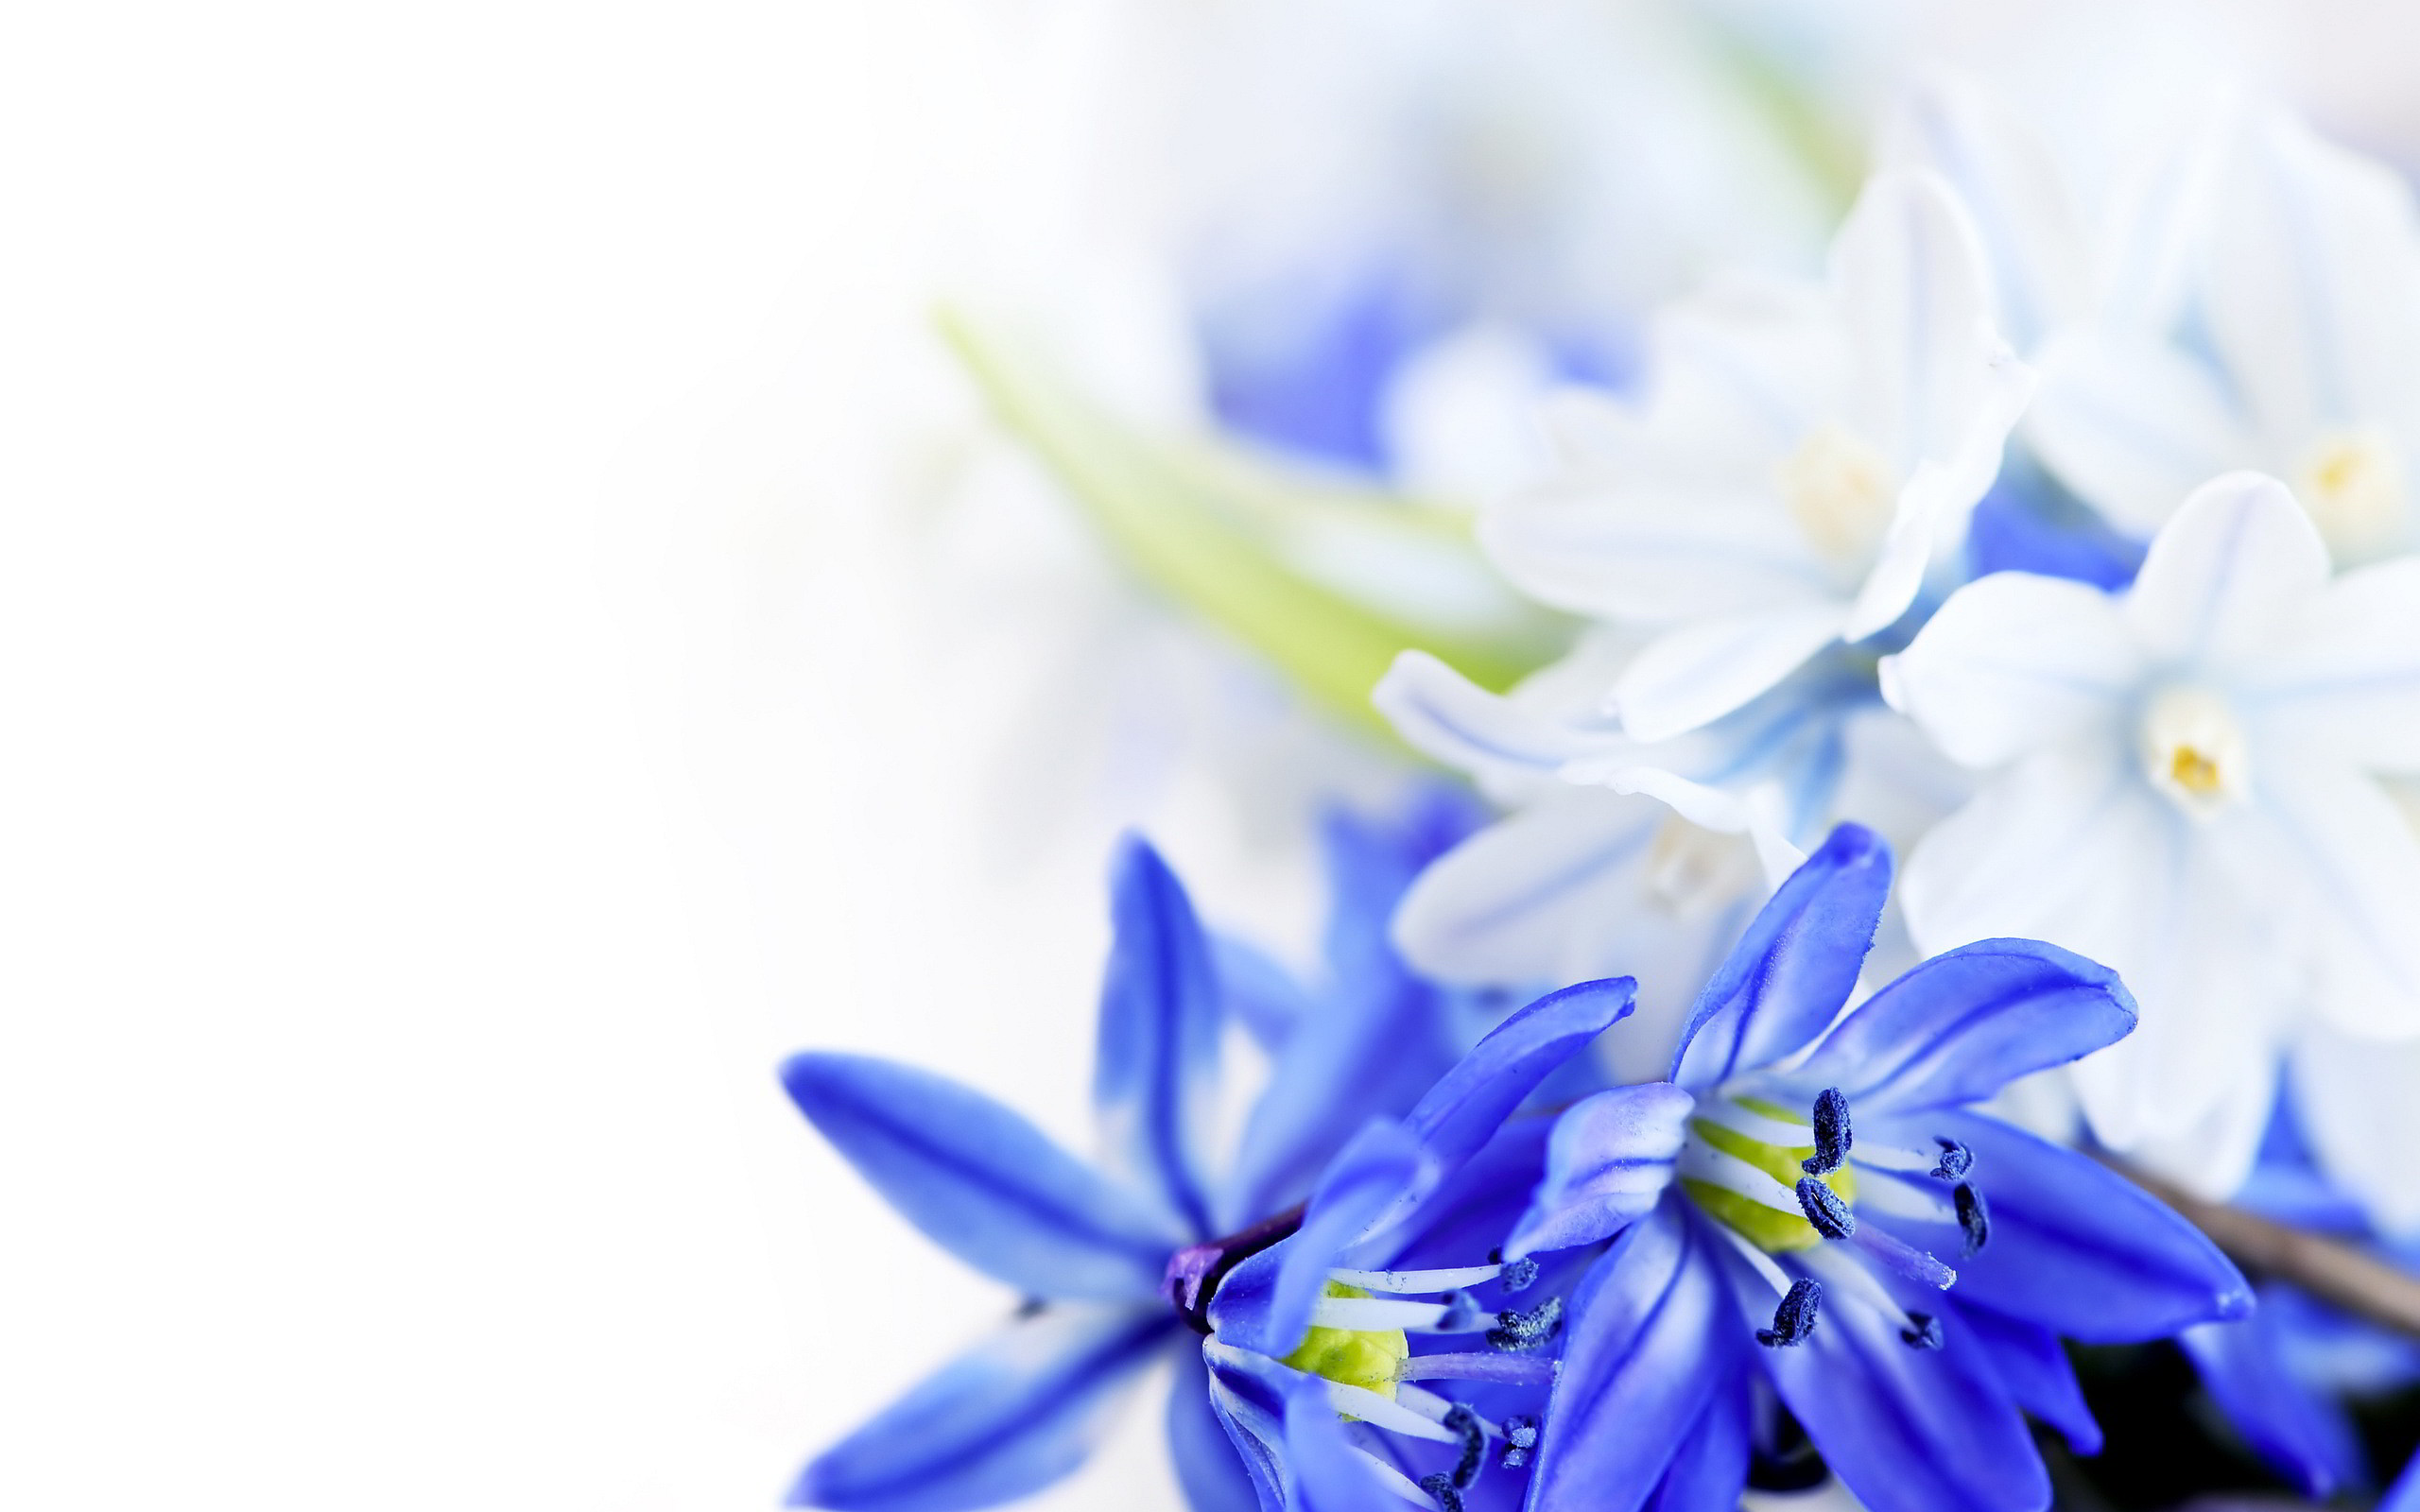 Blue wallpaper with white flowers 45 images 2560x1600 blue and white wallpaper 8904 mightylinksfo Choice Image